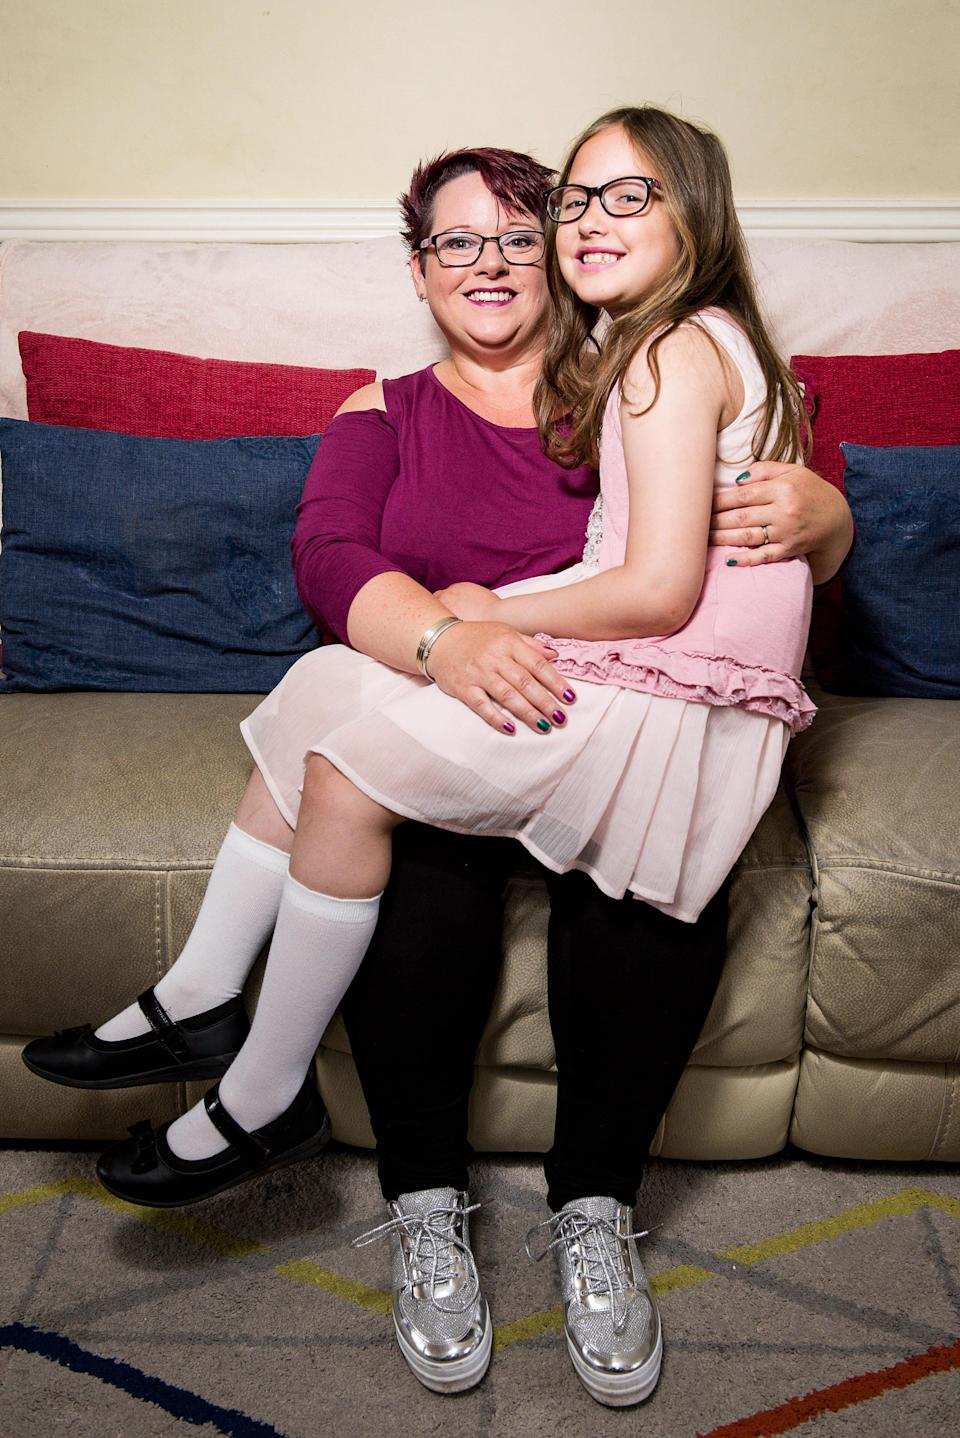 Sharon Spink, 50, with her 9-year-old daughter Charlotte. (Photo: Mercury Press)